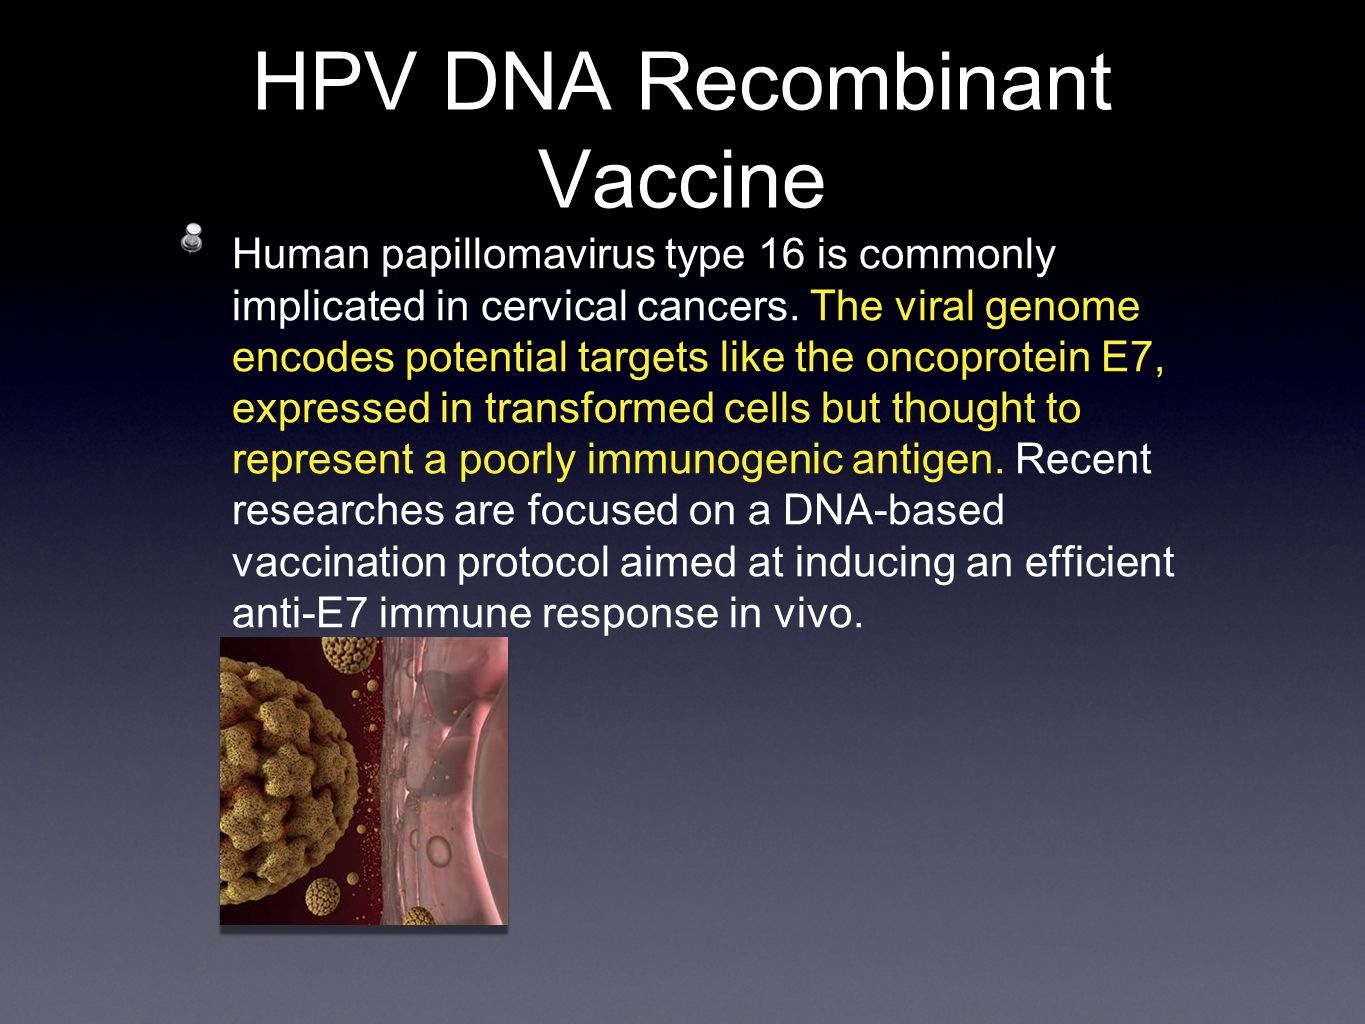 HPV DNA Recombinant Vaccine Human papillomavirus type 16 is commonly implicated in cervical cancers.